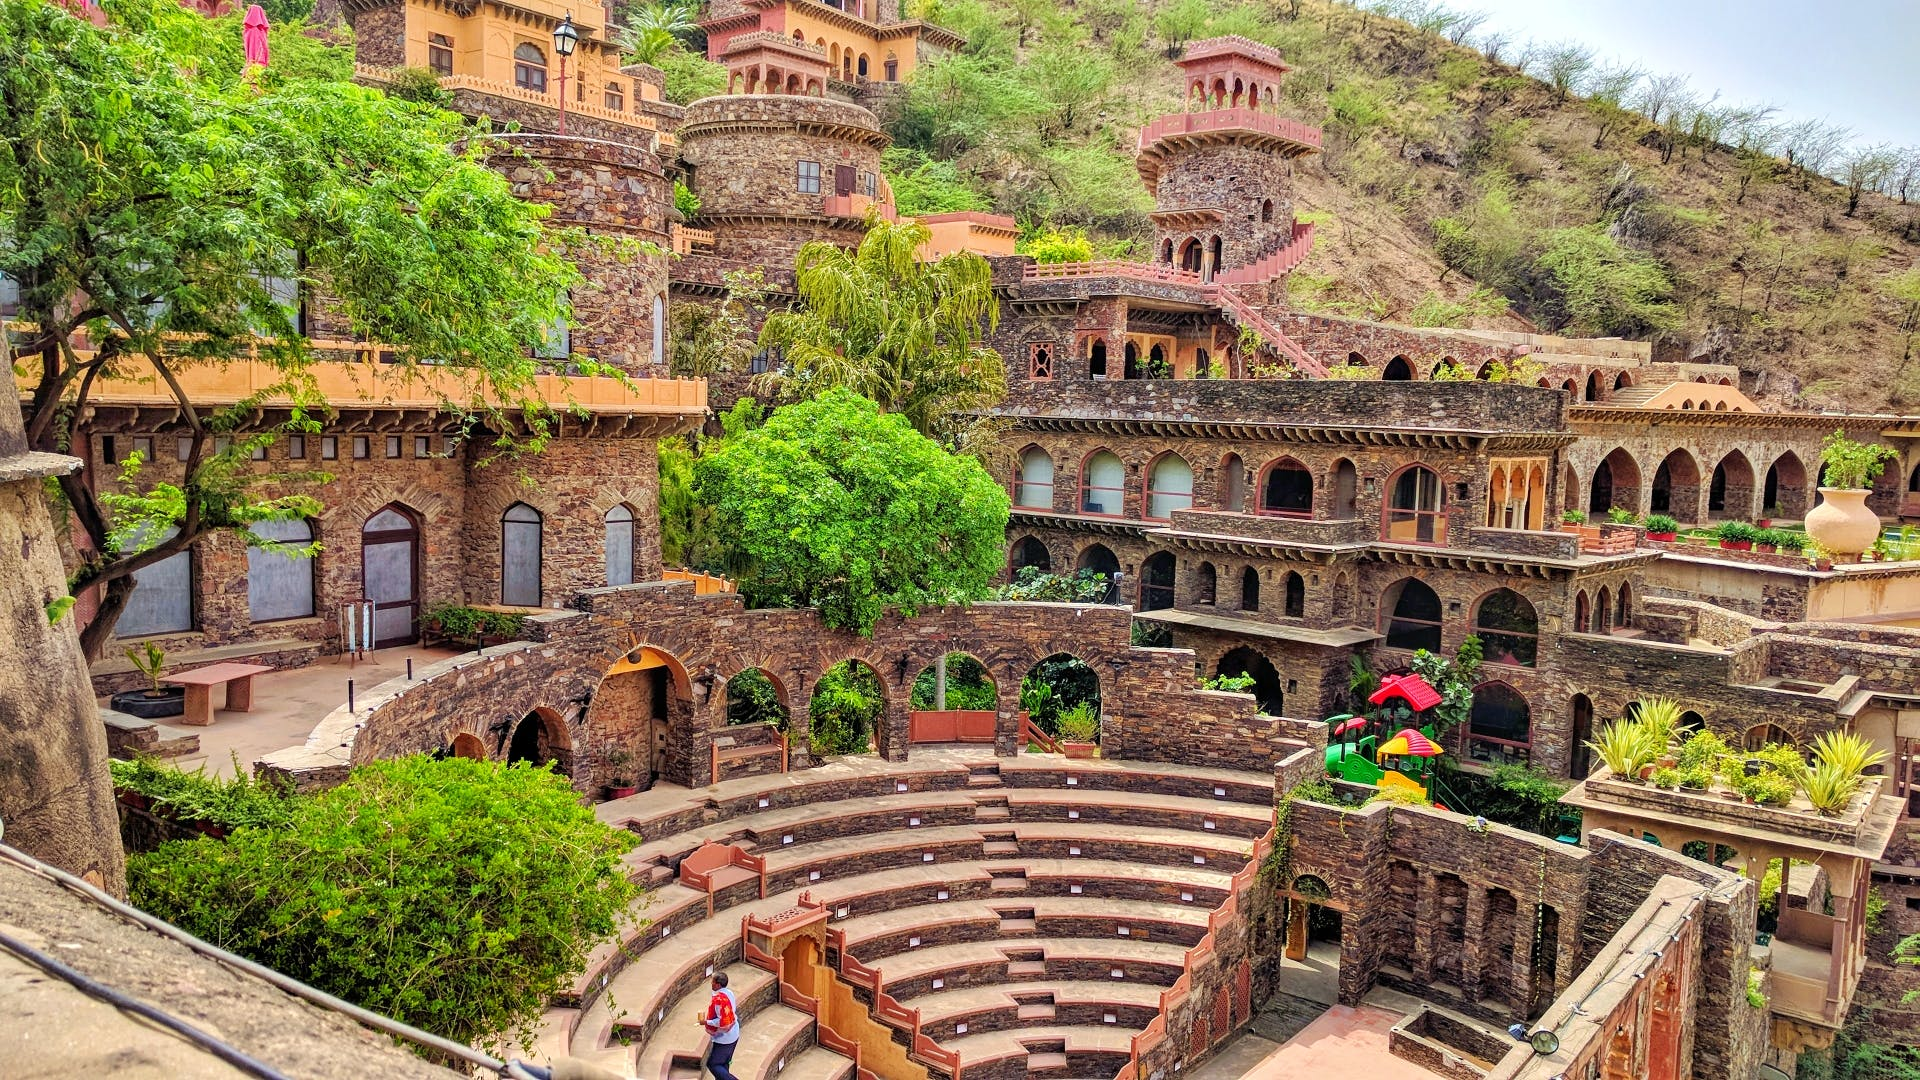 Landmark,Historic site,Building,Ancient history,Architecture,Human settlement,Tourism,Ruins,History,Amphitheatre